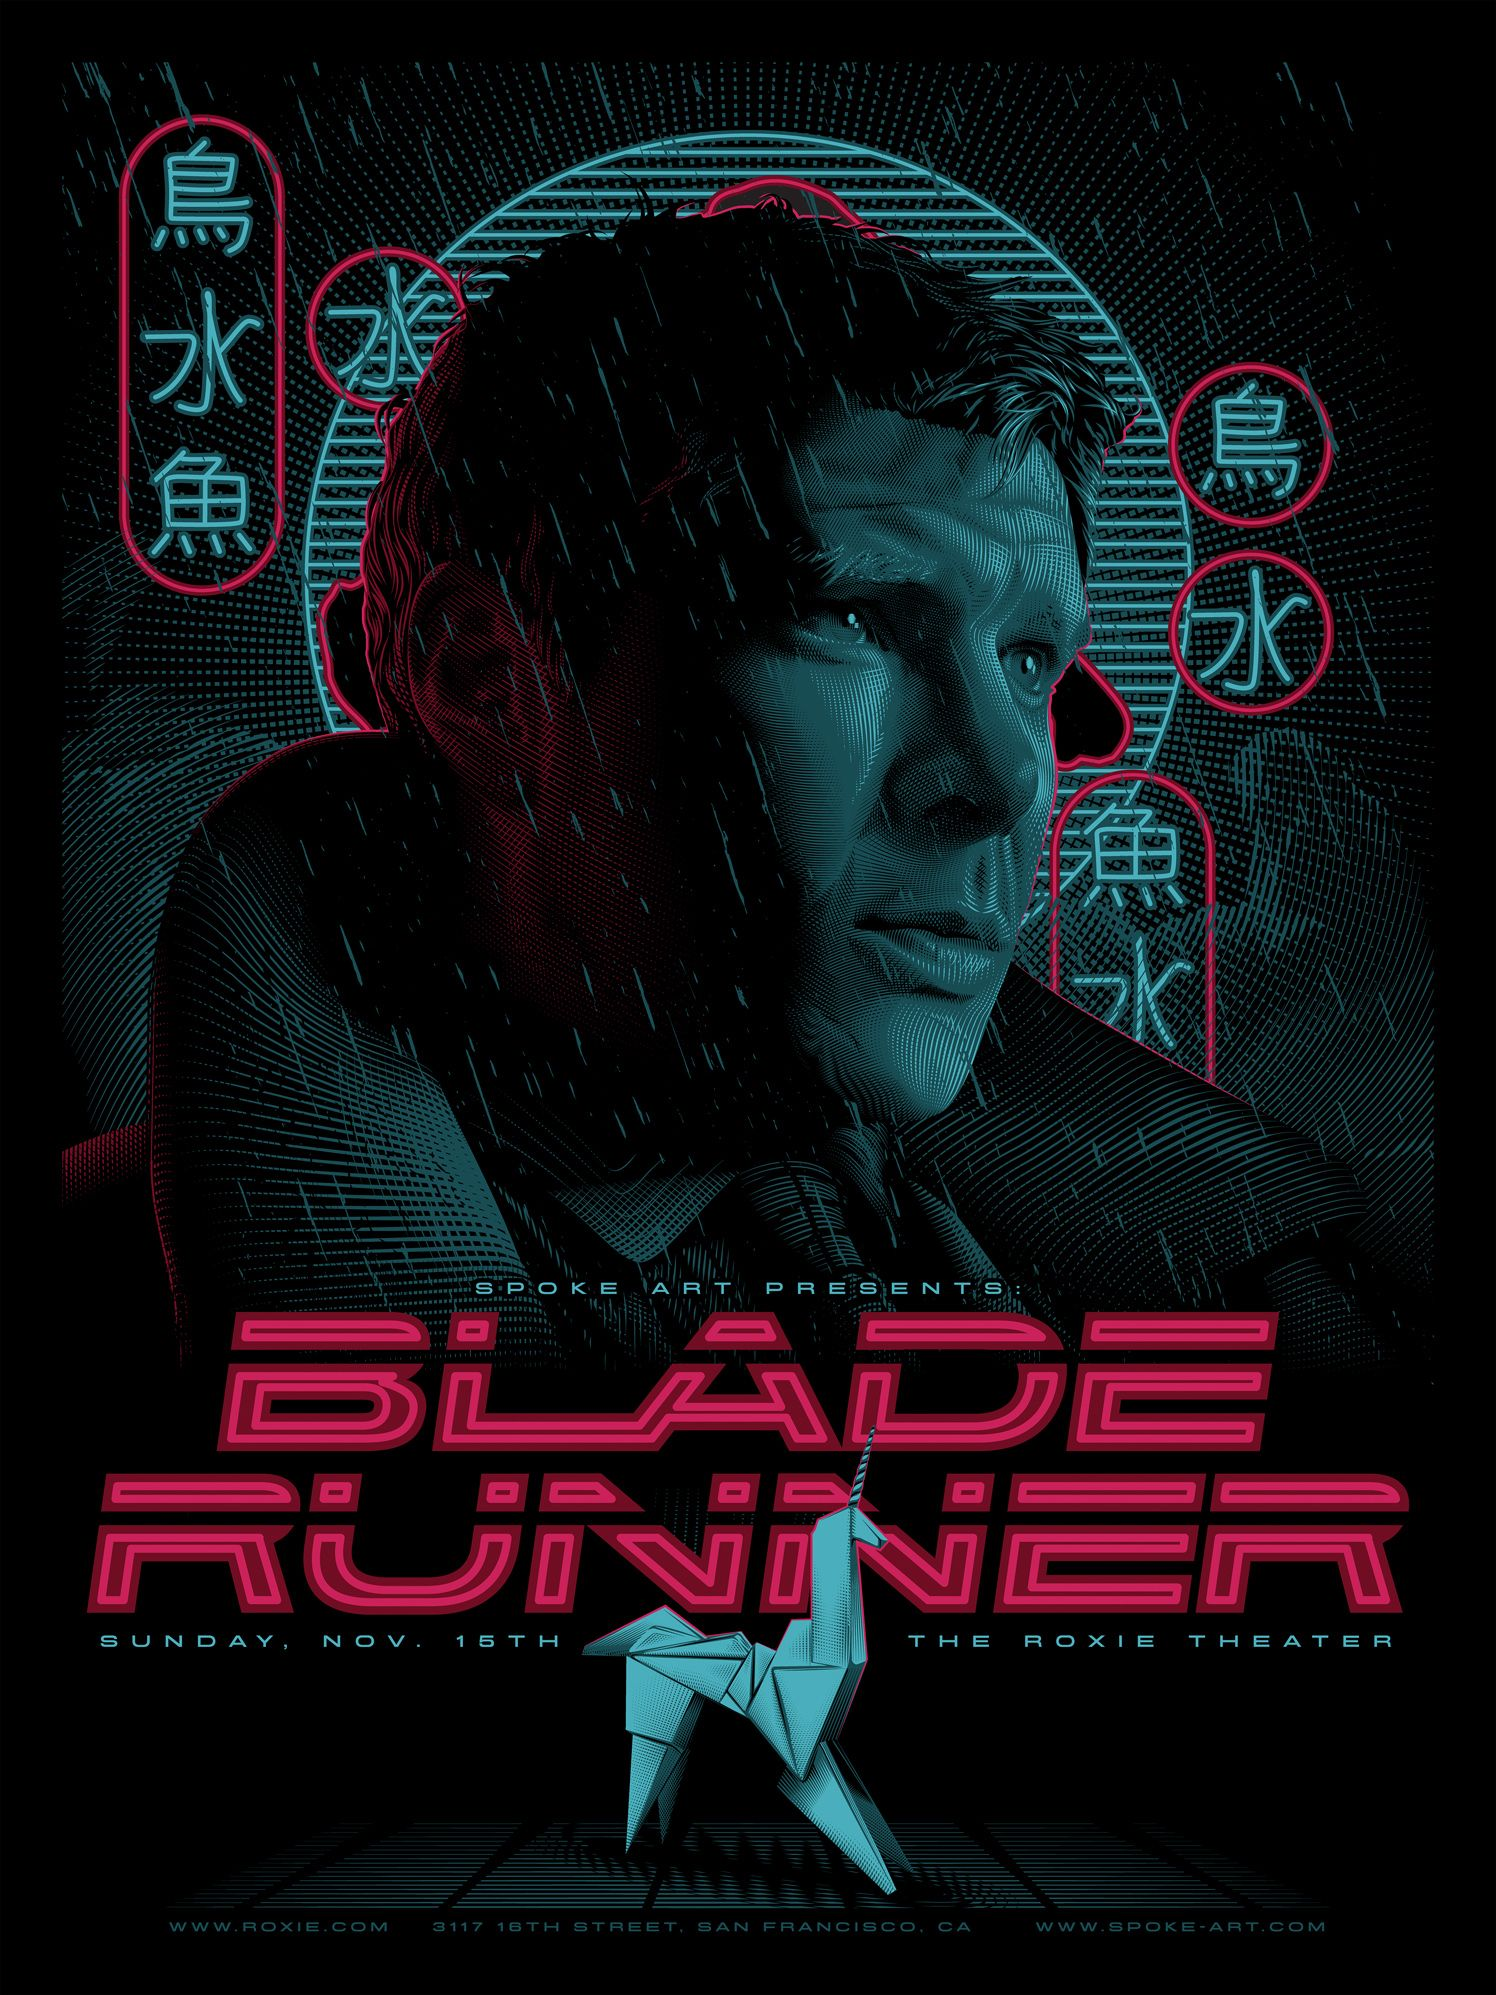 Blade Runner poster Tracie Ching